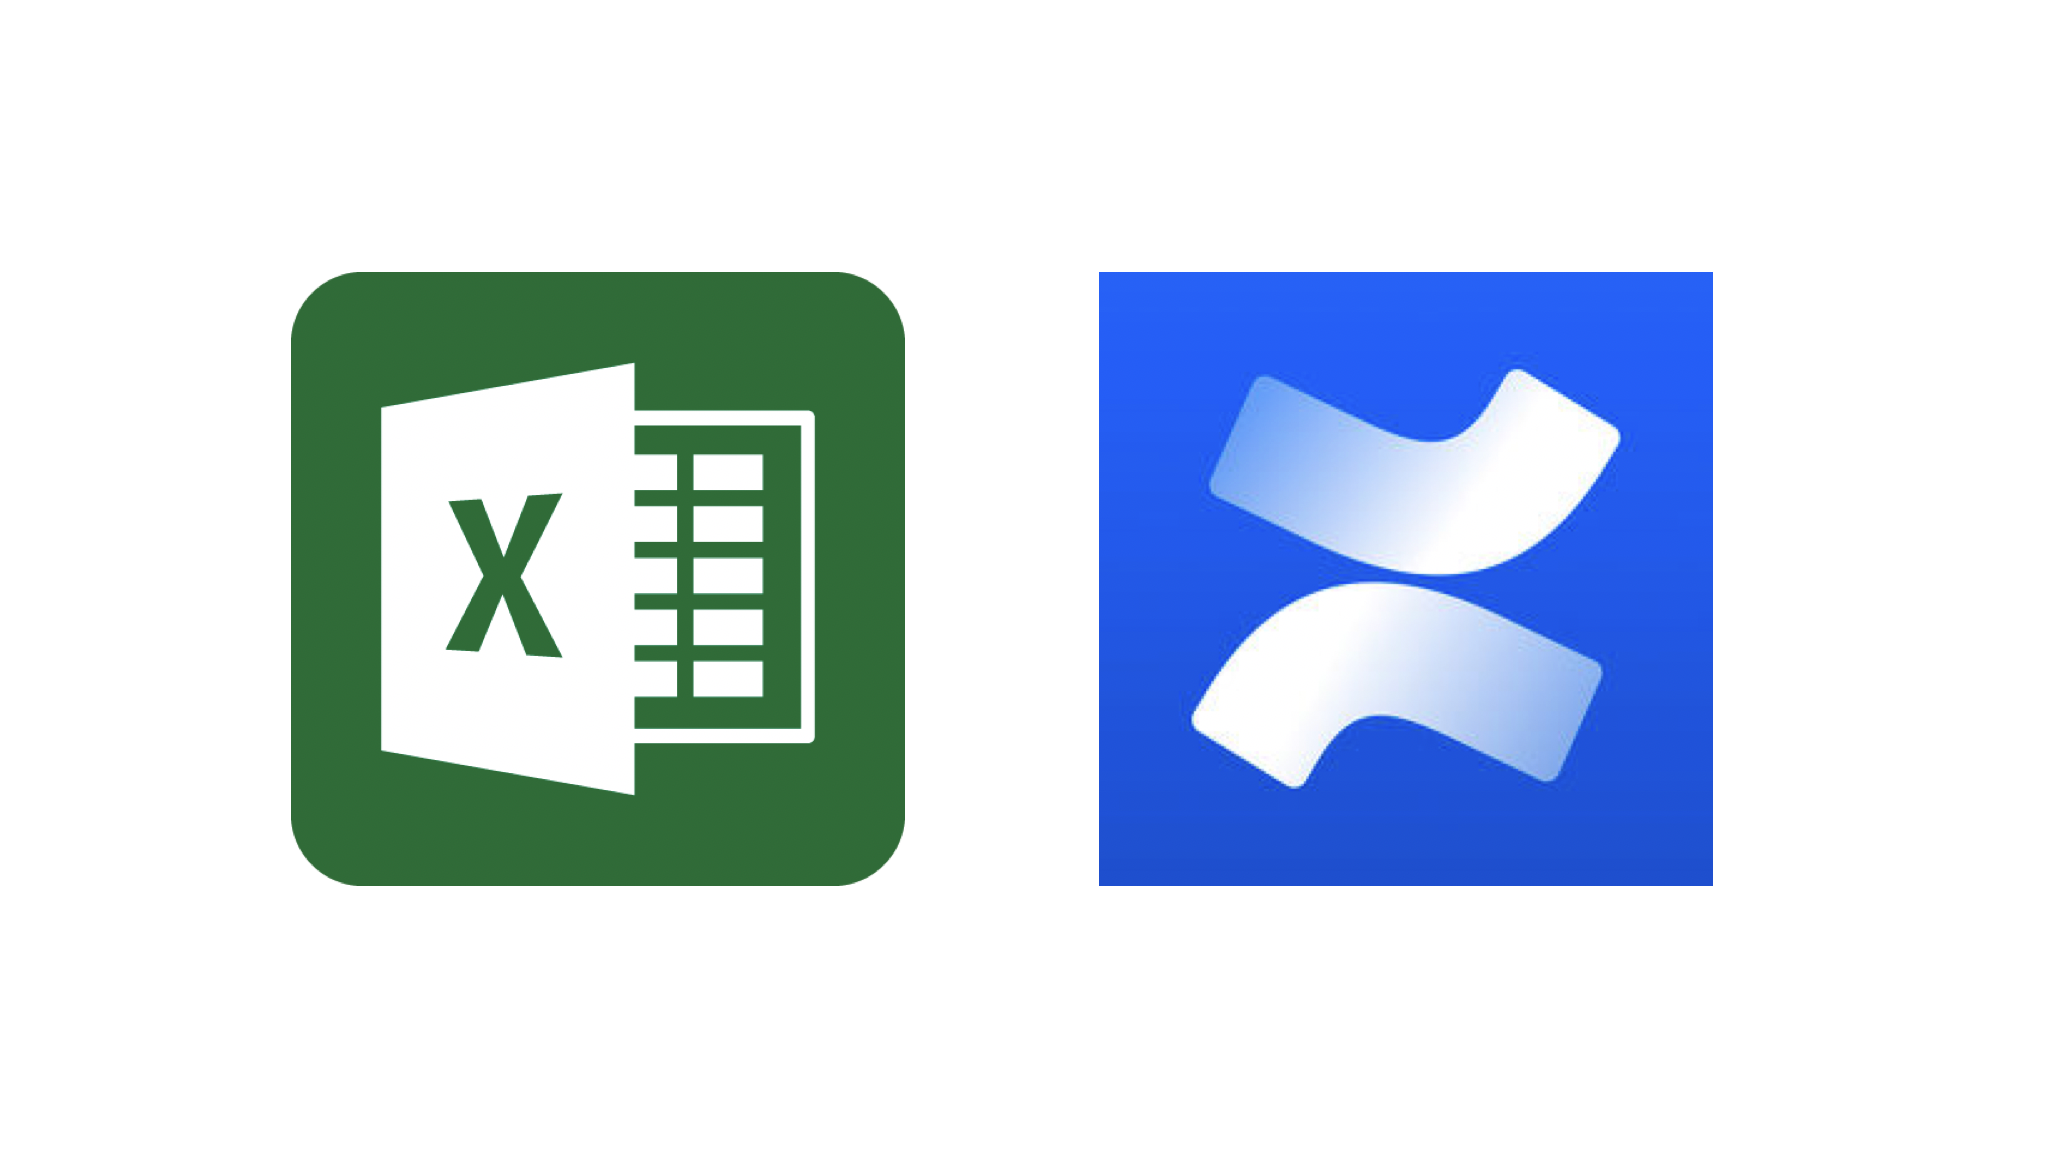 How To Display Excel with Confluence